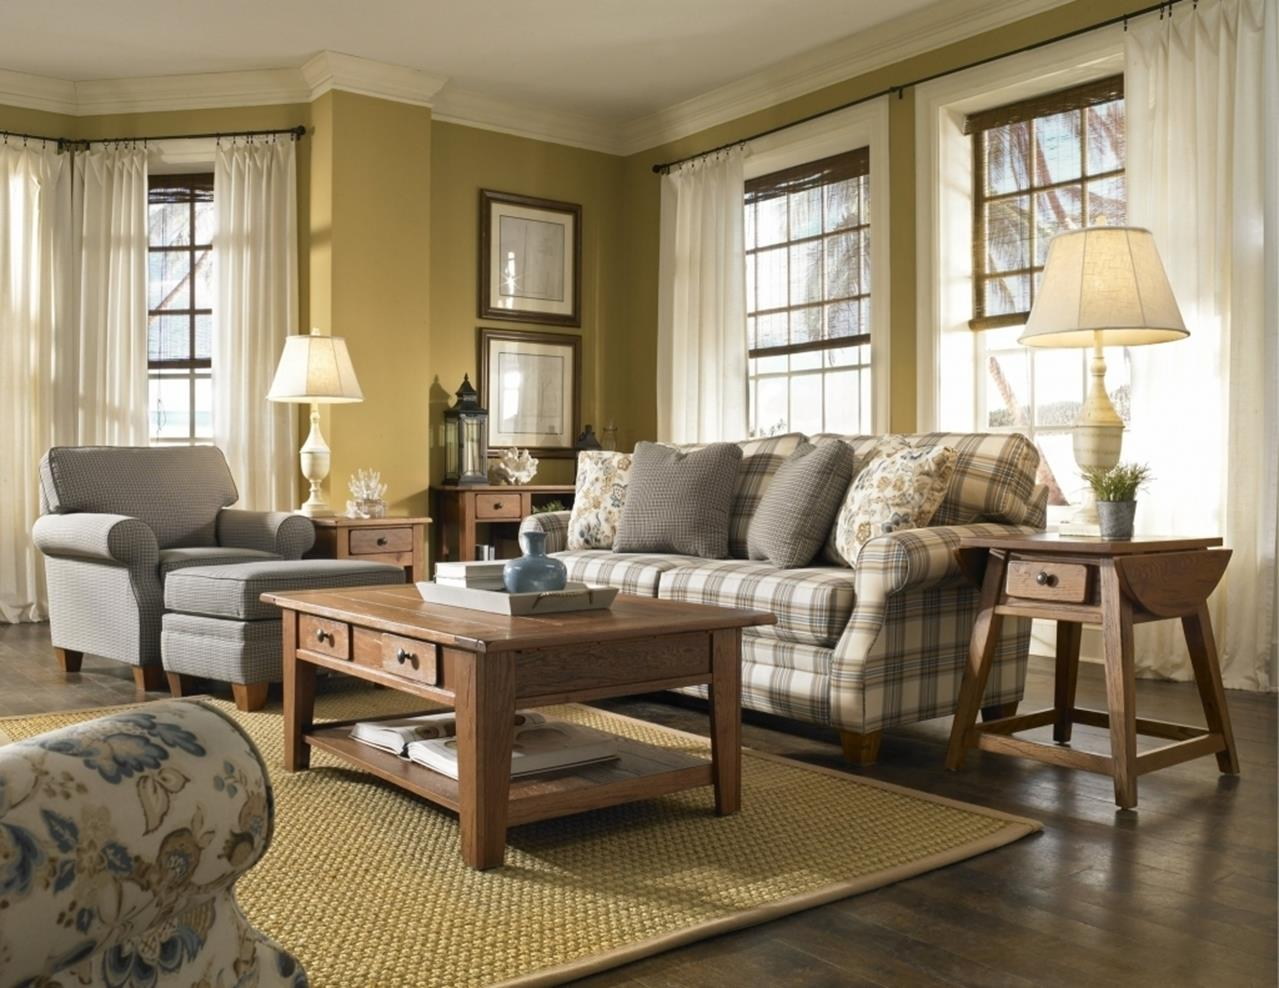 33 Perfect Country Style Living Room Furniture Ideas